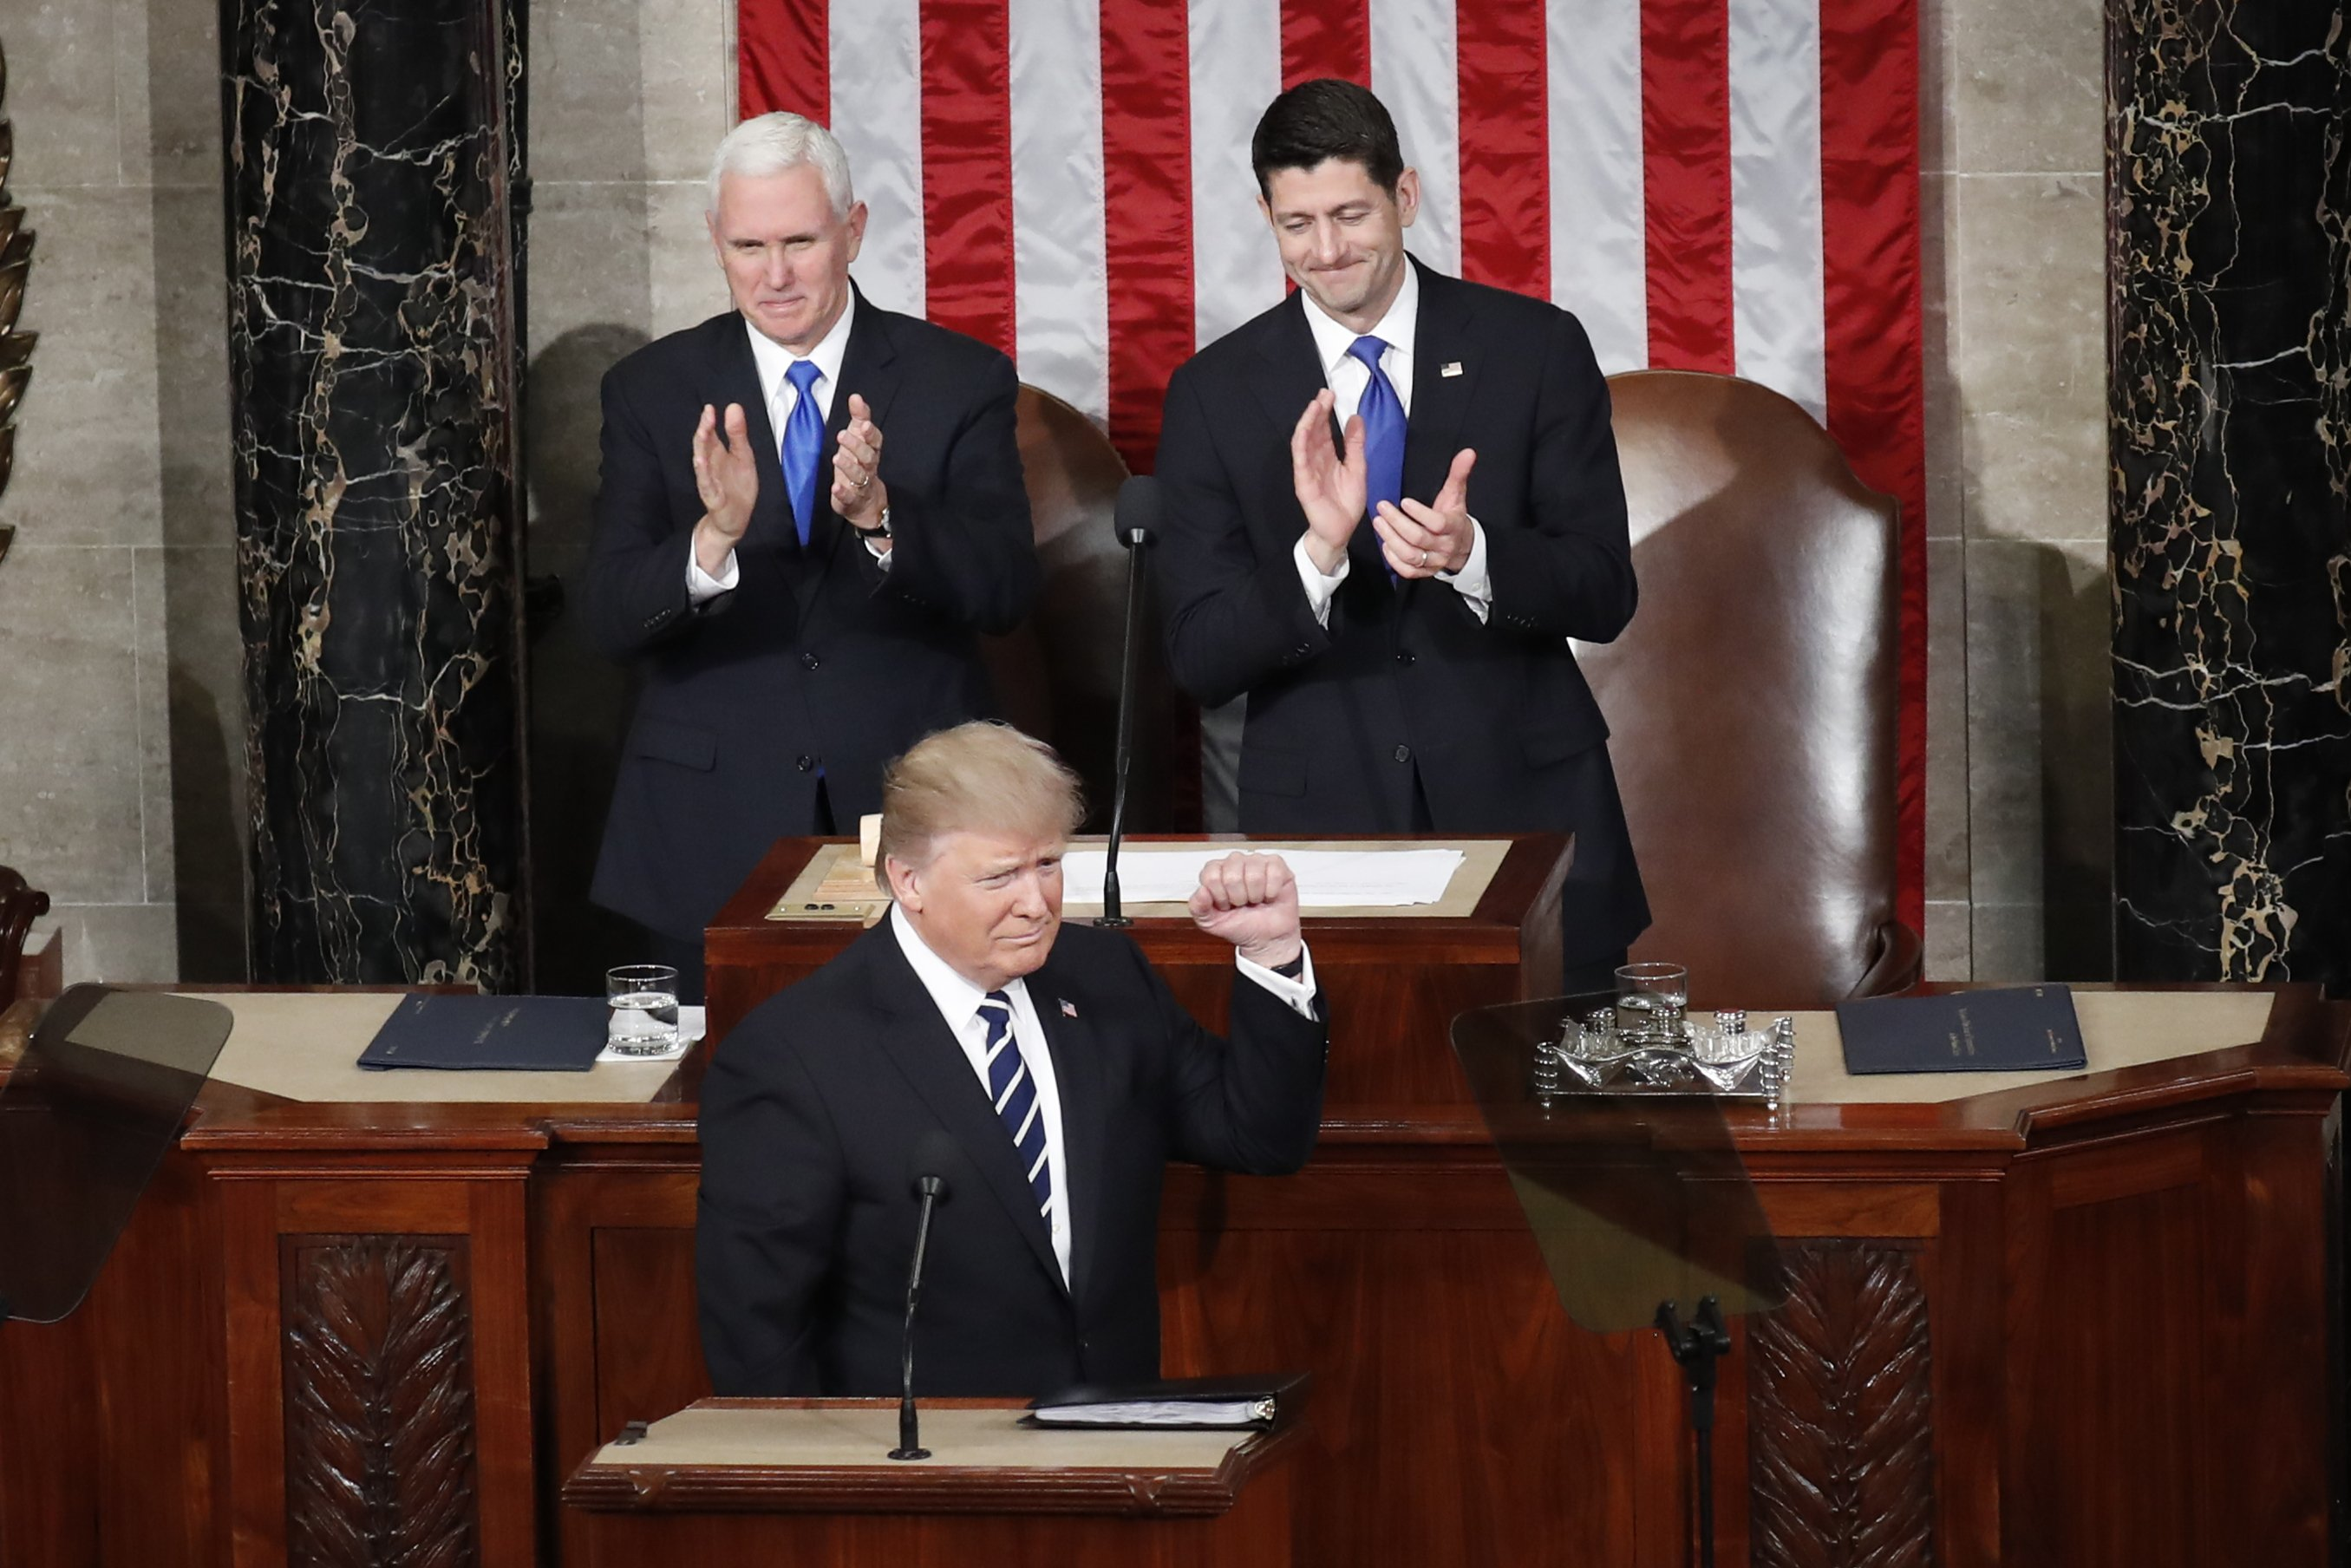 AP FACT CHECK: Trump presidency creates an alternate reality